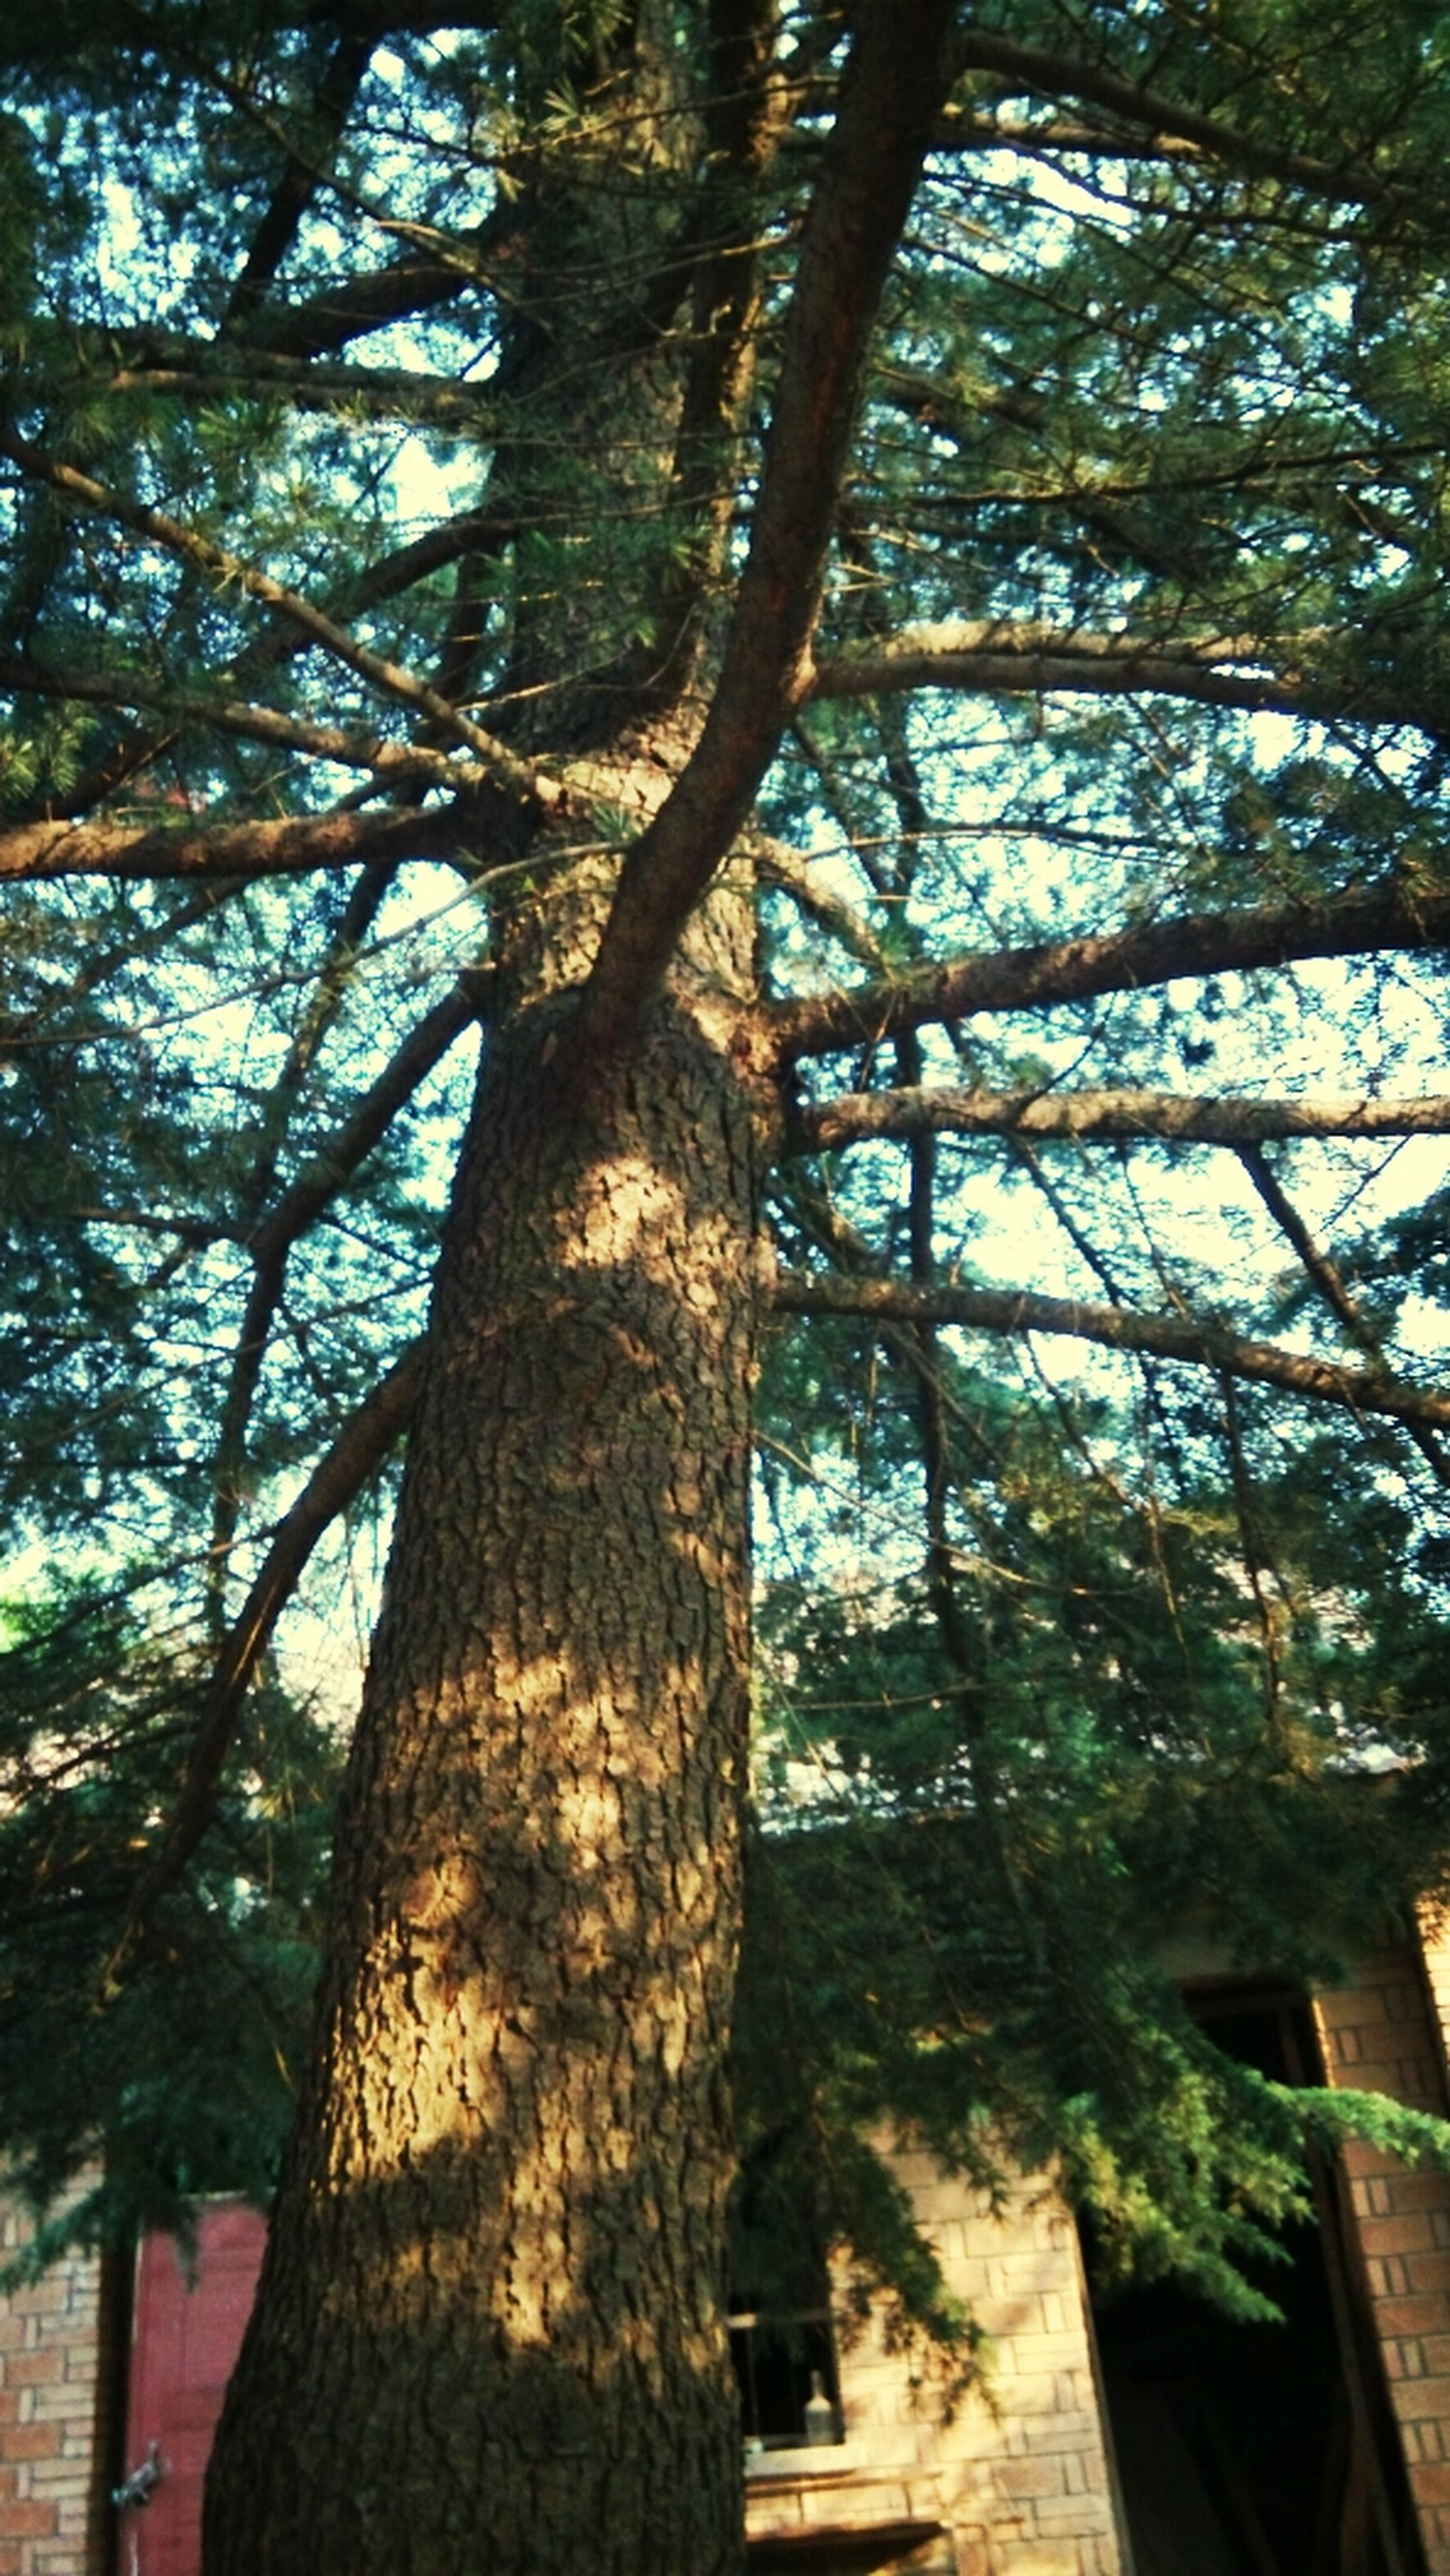 tree, tree trunk, low angle view, branch, growth, nature, sunlight, building exterior, sky, day, built structure, outdoors, no people, architecture, tranquility, beauty in nature, shadow, wood - material, green color, park - man made space